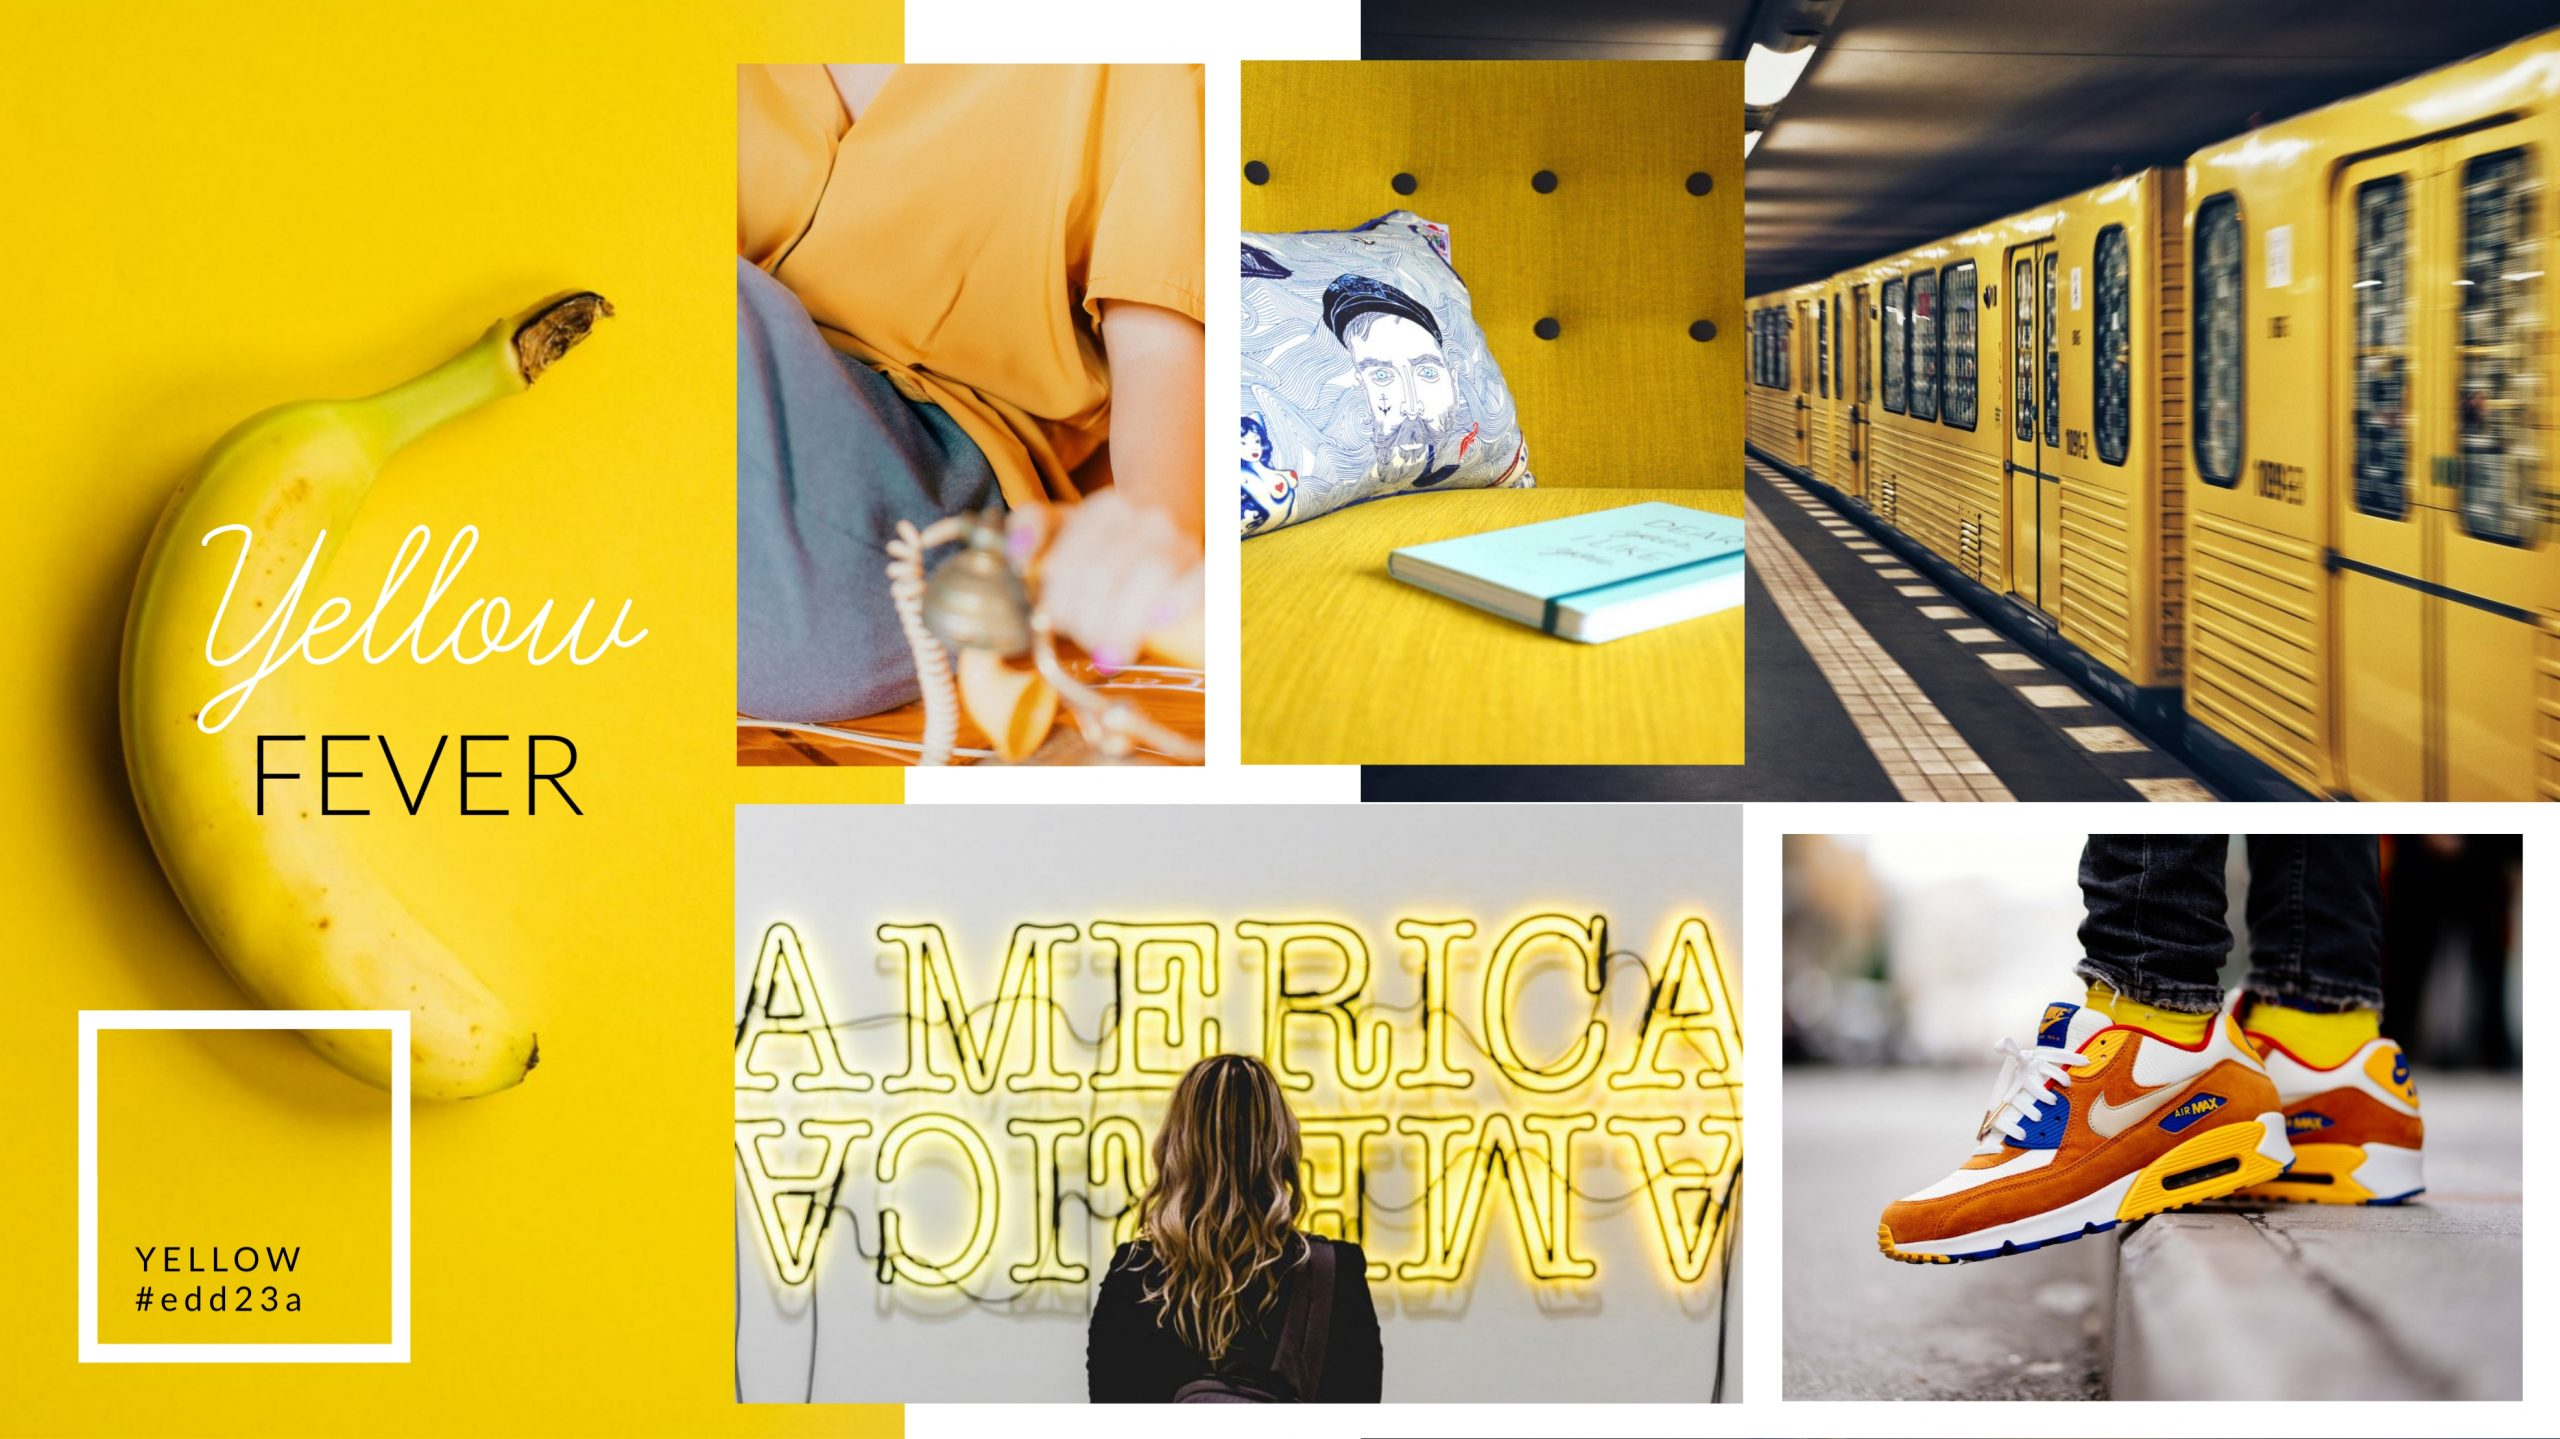 how to design a logo - put together a mood board